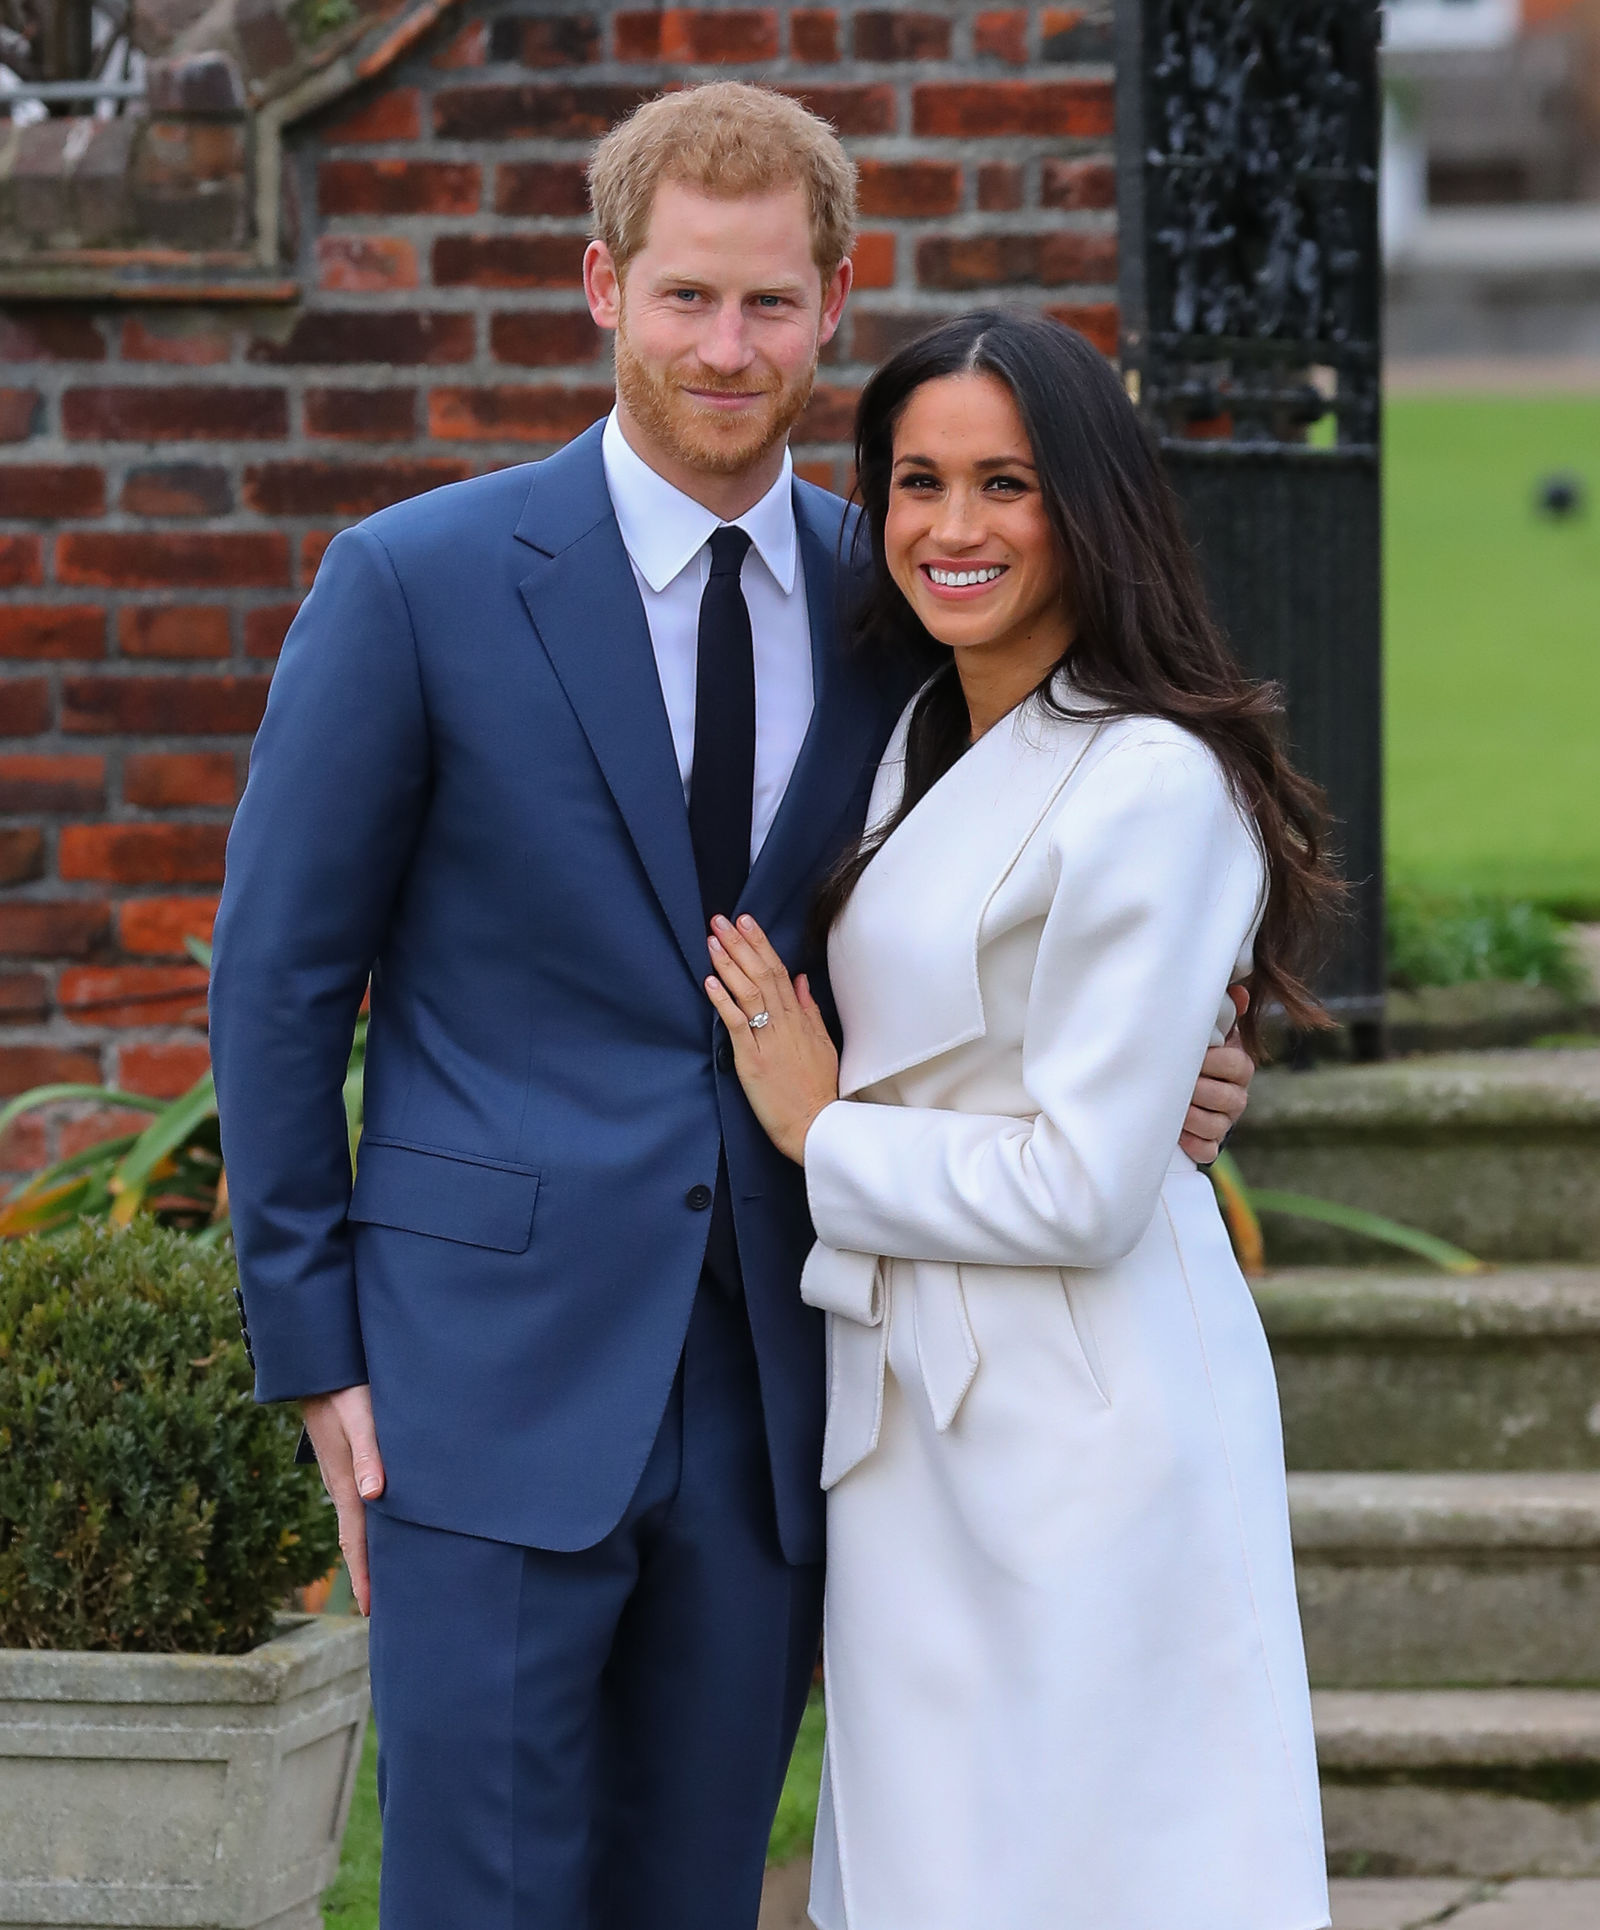 Prince Harry and Meghan Markle attend a photo call at Kensington Palace to mark their engagement                                    Featuring: Prince Harry, Meghan Markle                  Where: London, United Kingdom                  When: 27 Nov 2017                  Credit: John Rainford/WENN.com